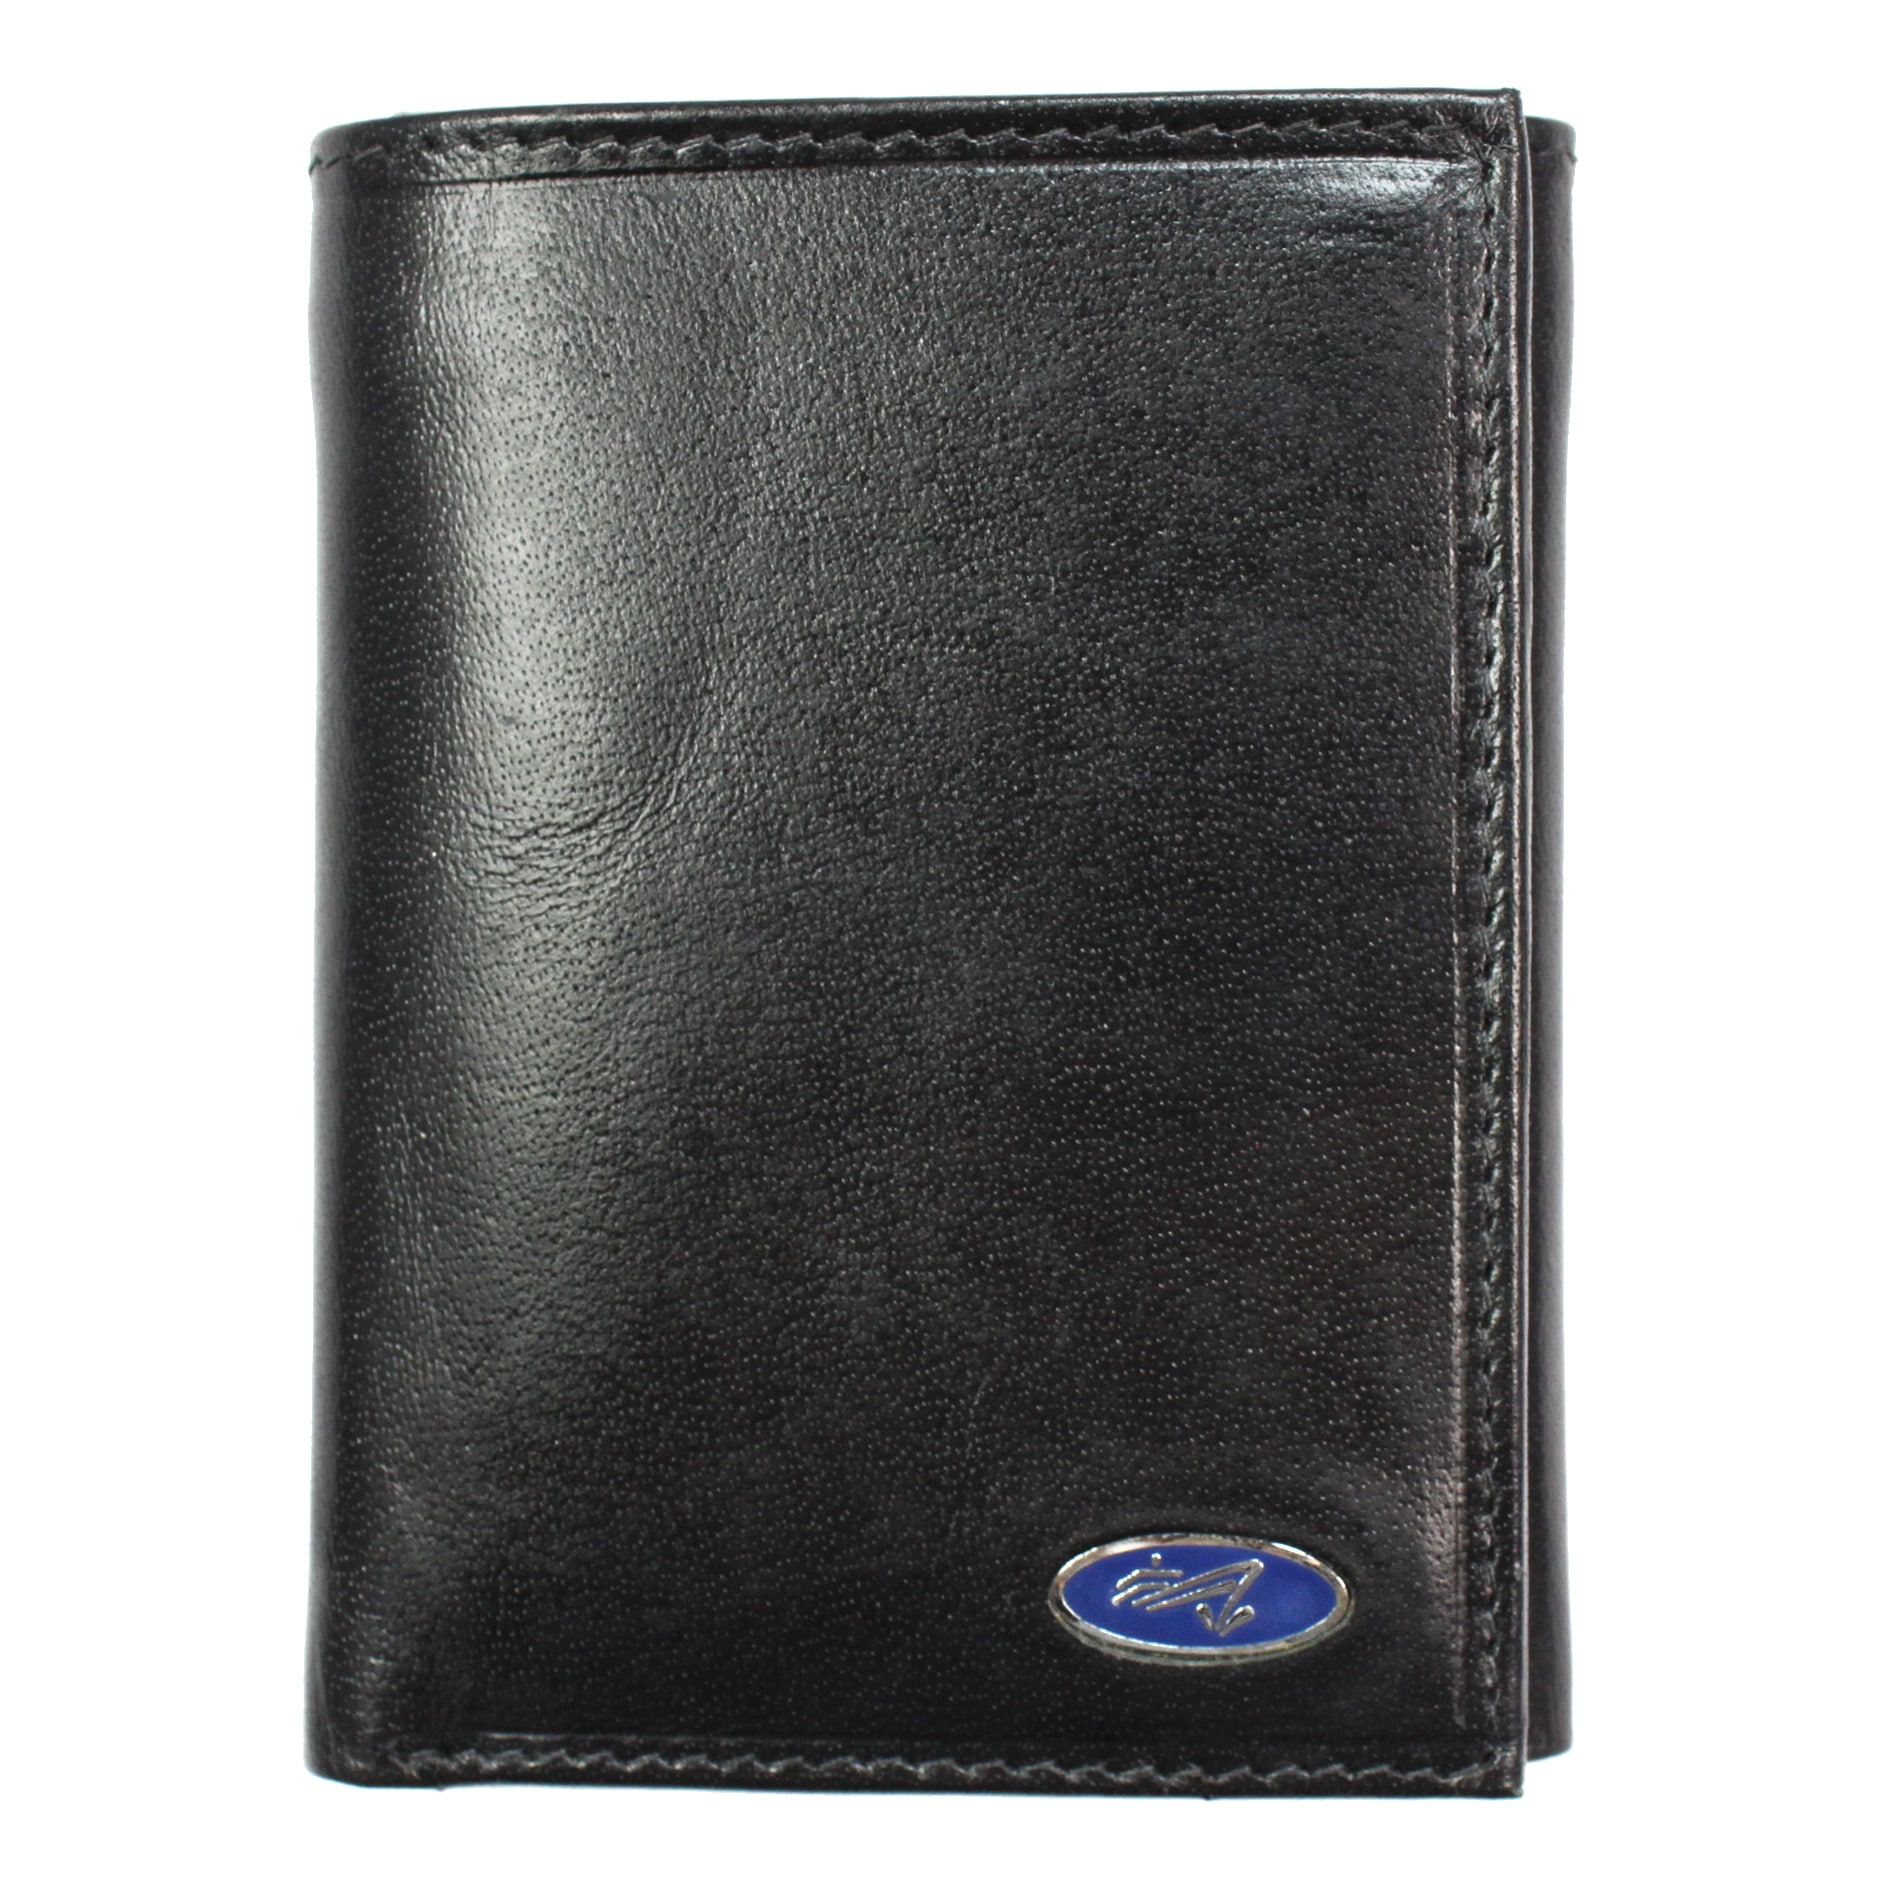 Yacht Men's Black Leather Tri-fold Wallet